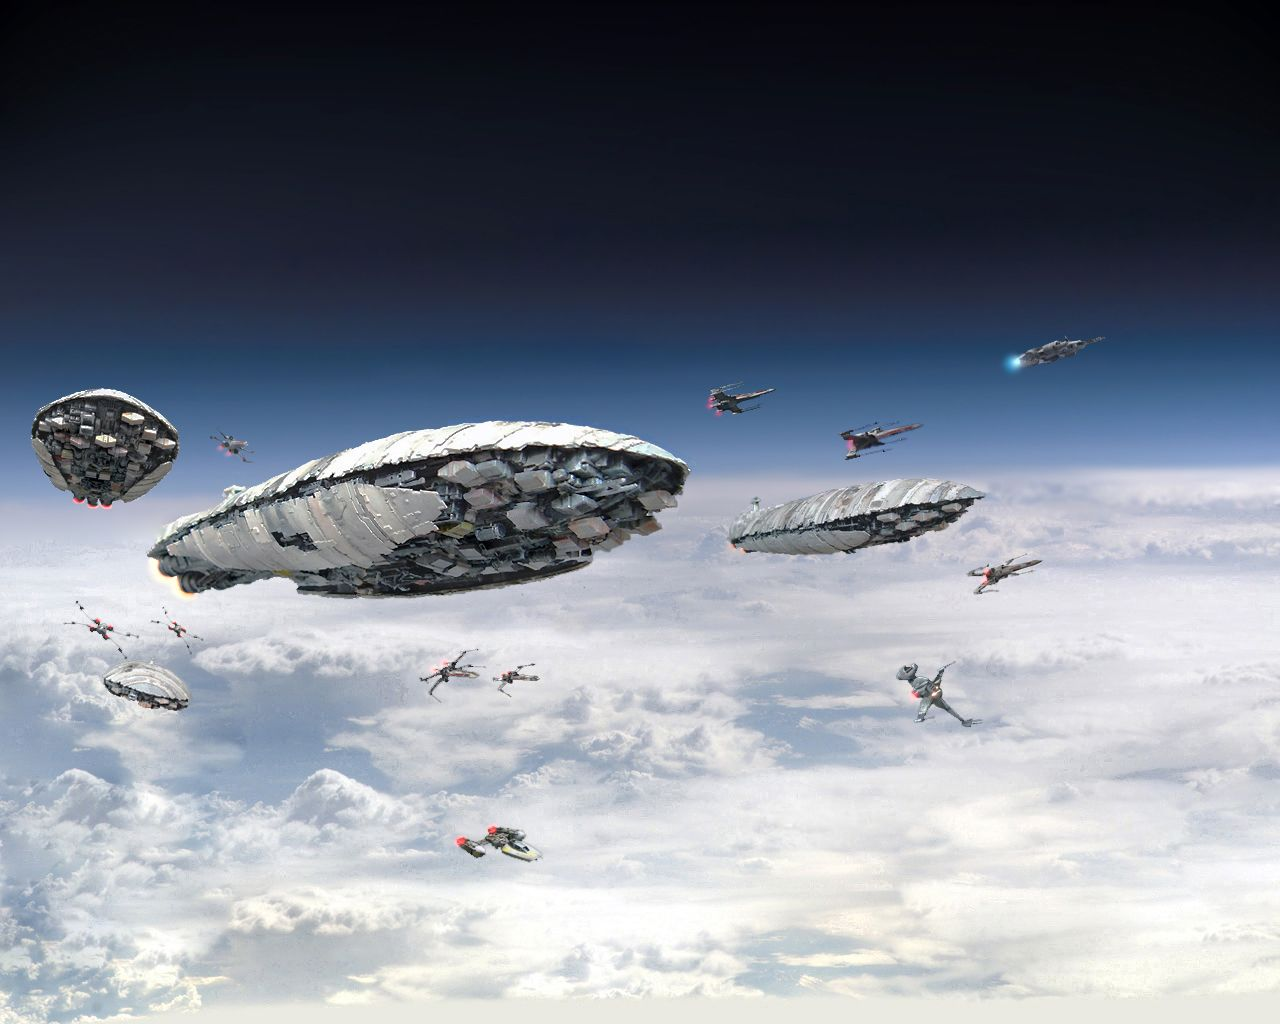 Rebel Transports, X-Wings, Y-Wings and B-Wings - Leaving Hoth Once Again-1 by 1darthvader.deviantart.com on @deviantART